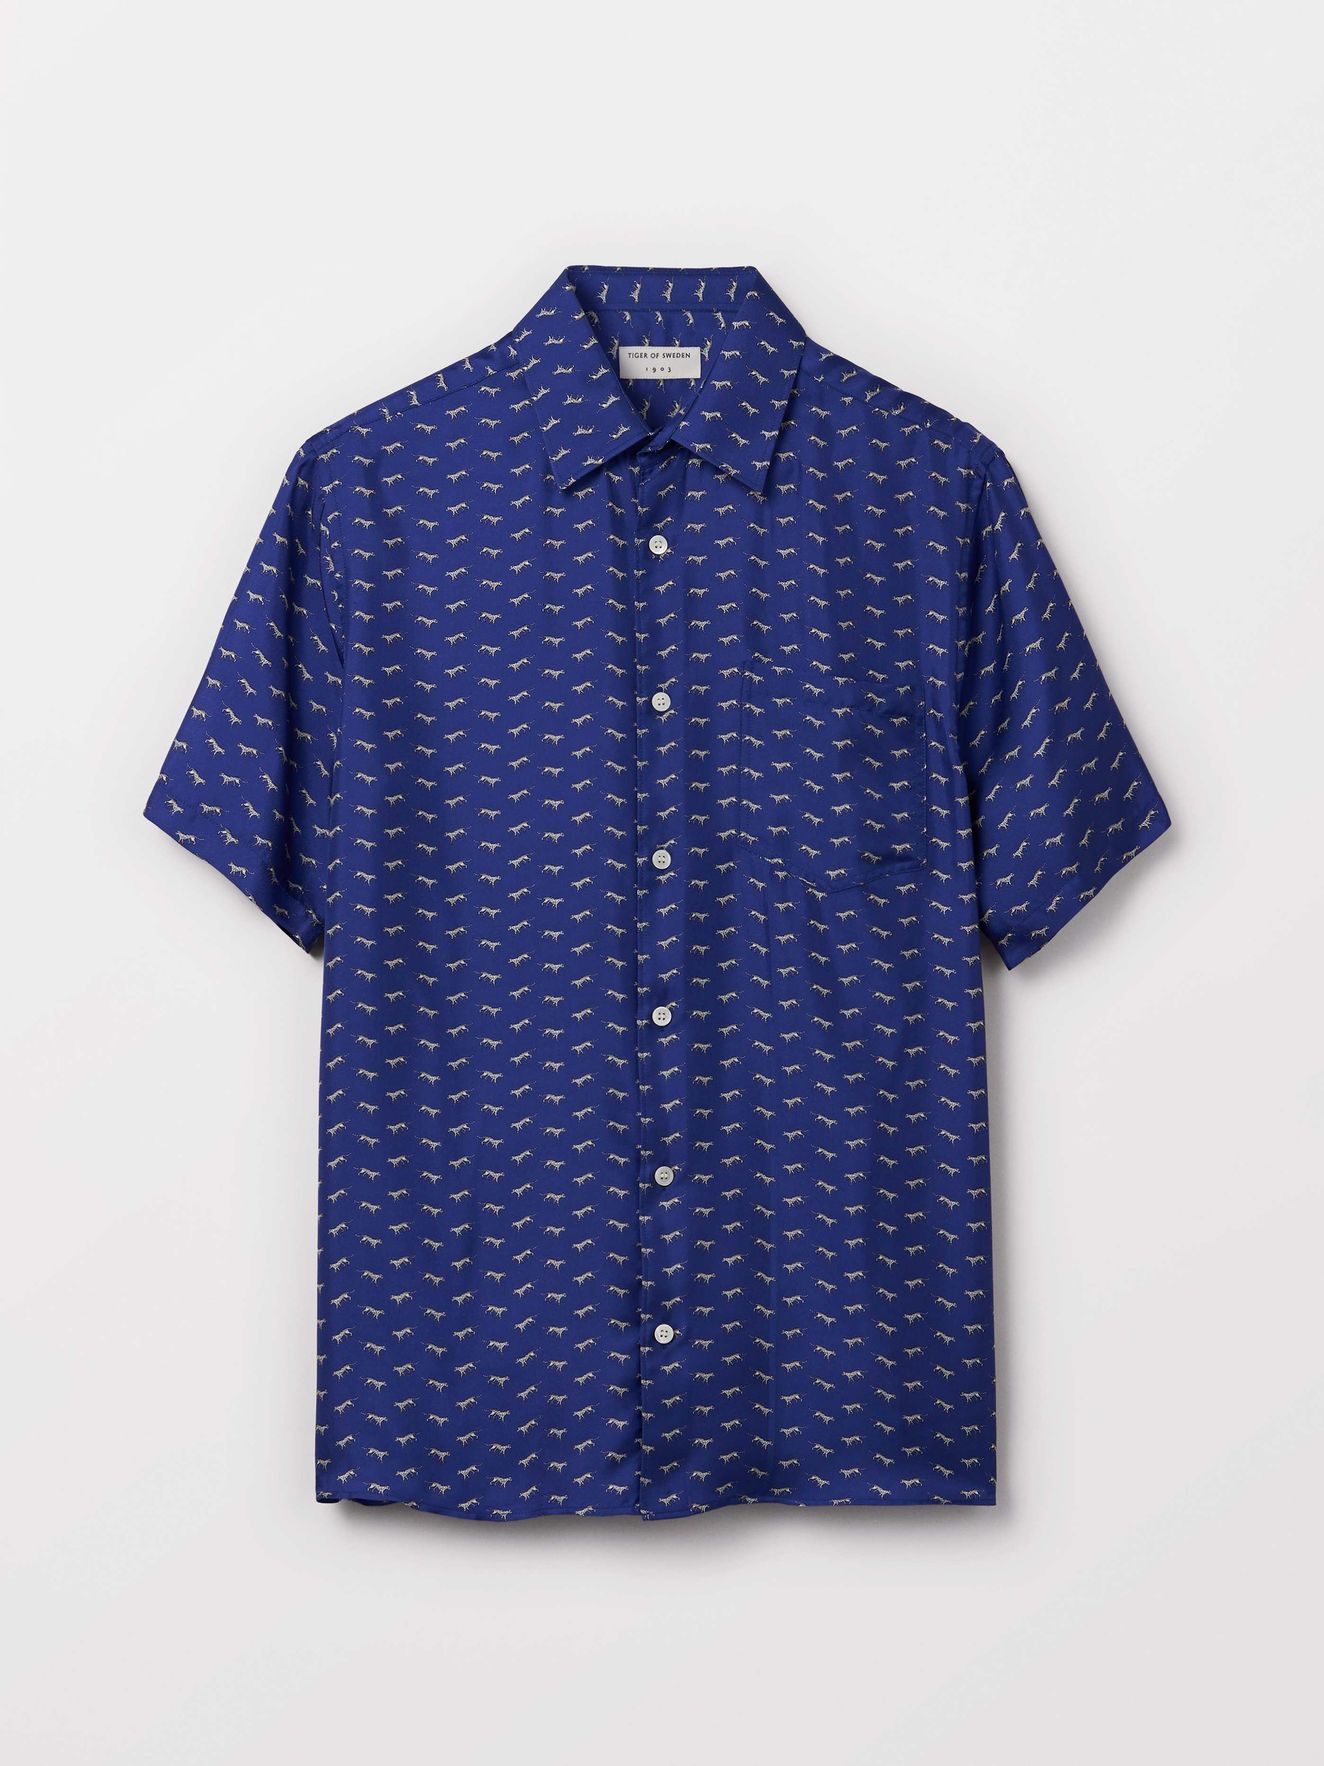 Tiger of Sweden SS18 Shirt